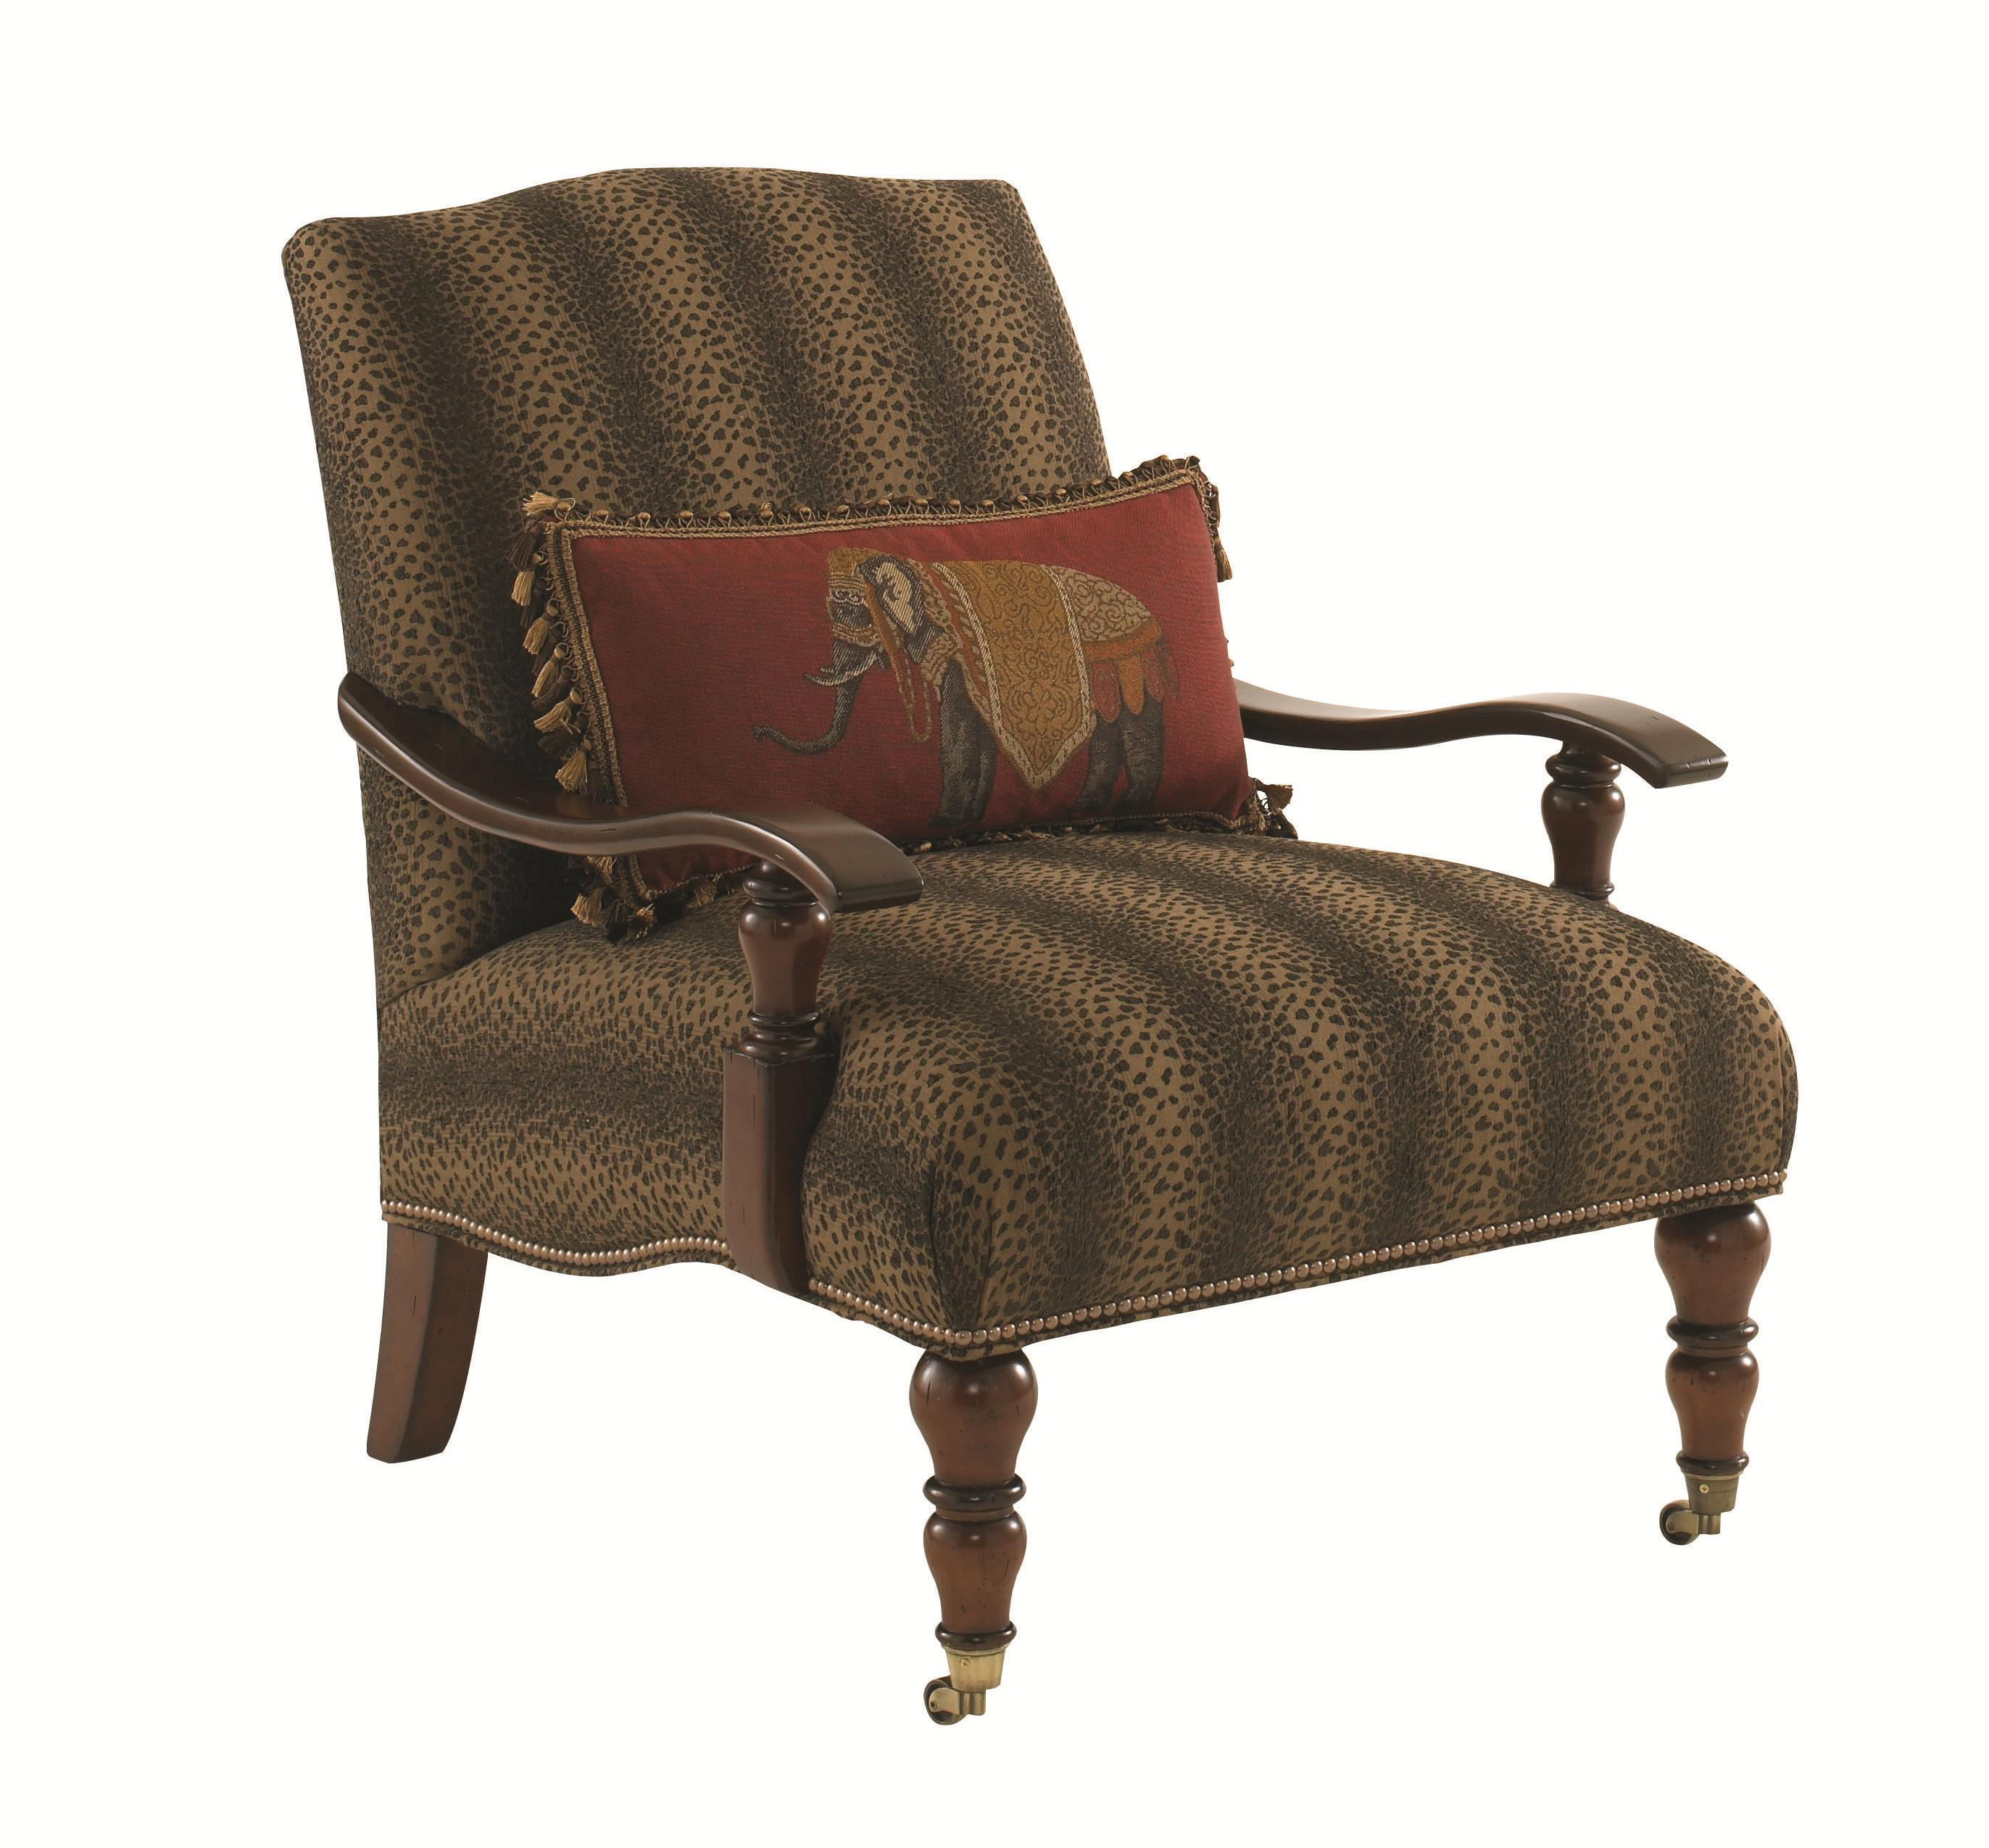 Tommy Bahama Home Landara San Carlos Chair With Exposed Wood Arms And Casters Jacksonville